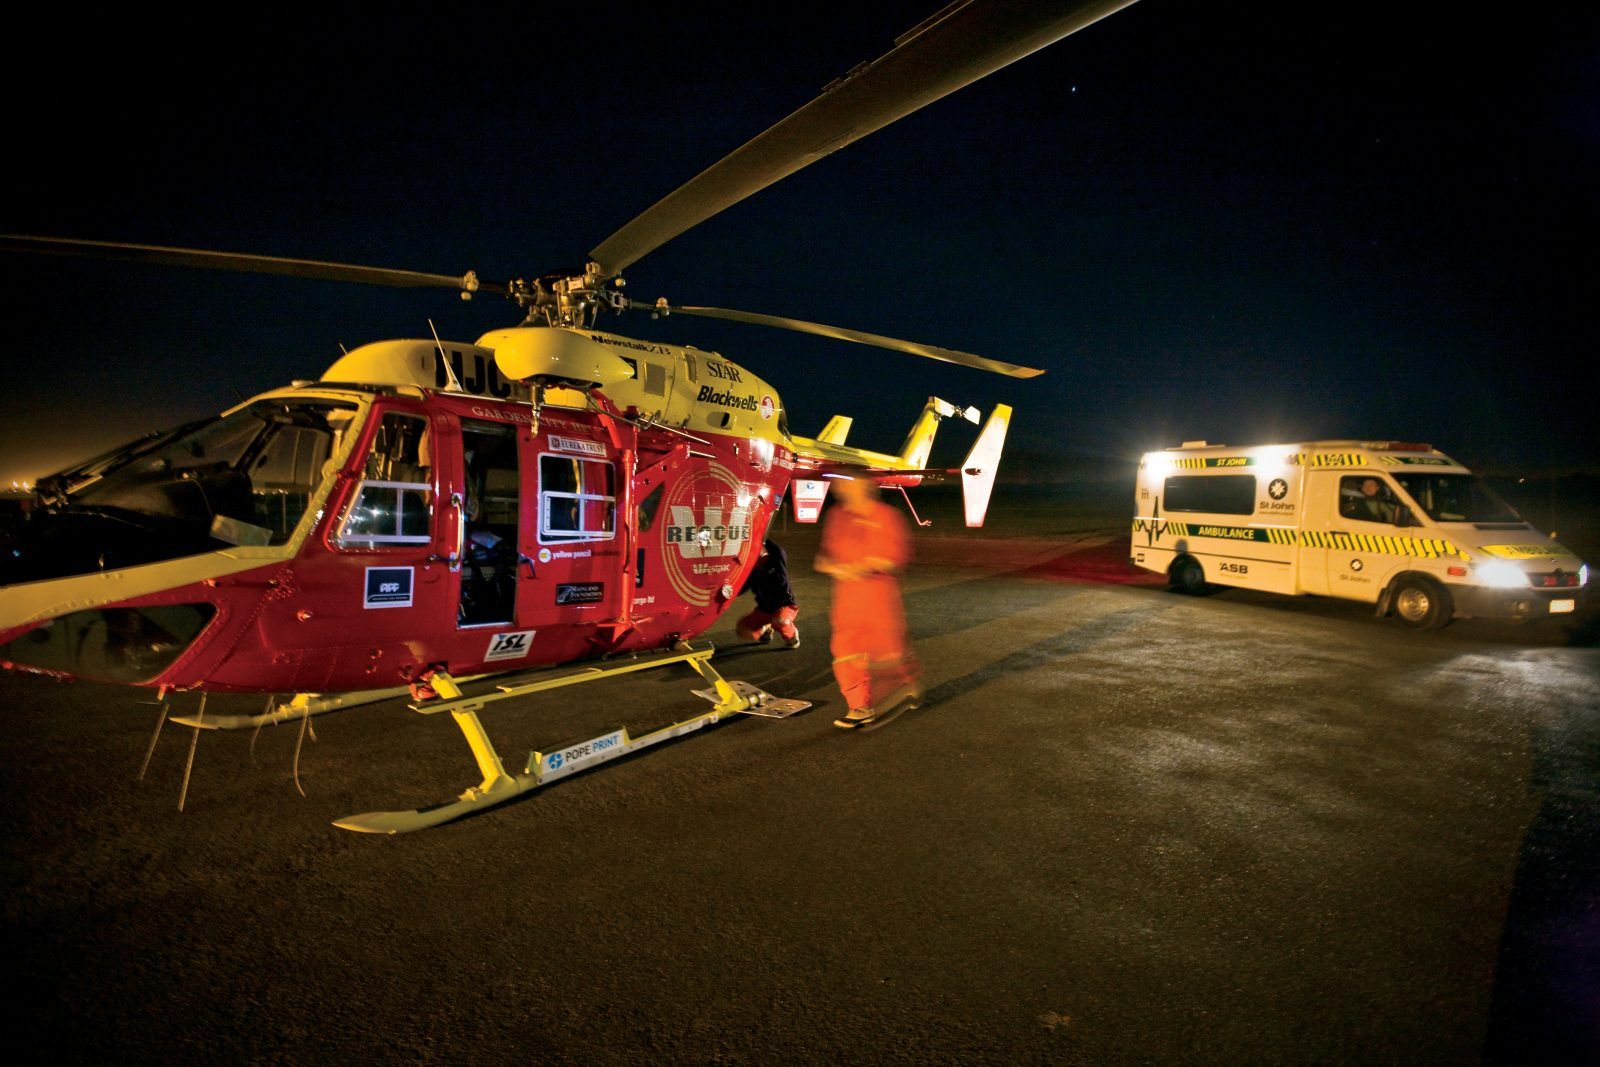 An integral part of the emergency response in Christchurch is the Westpac Rescue Helicopter and St Johns Ambulance working in tandem. Their efforts are coordinated at the 111 centre in Christchurch, where all ambulance dispatches across the South Island are made.